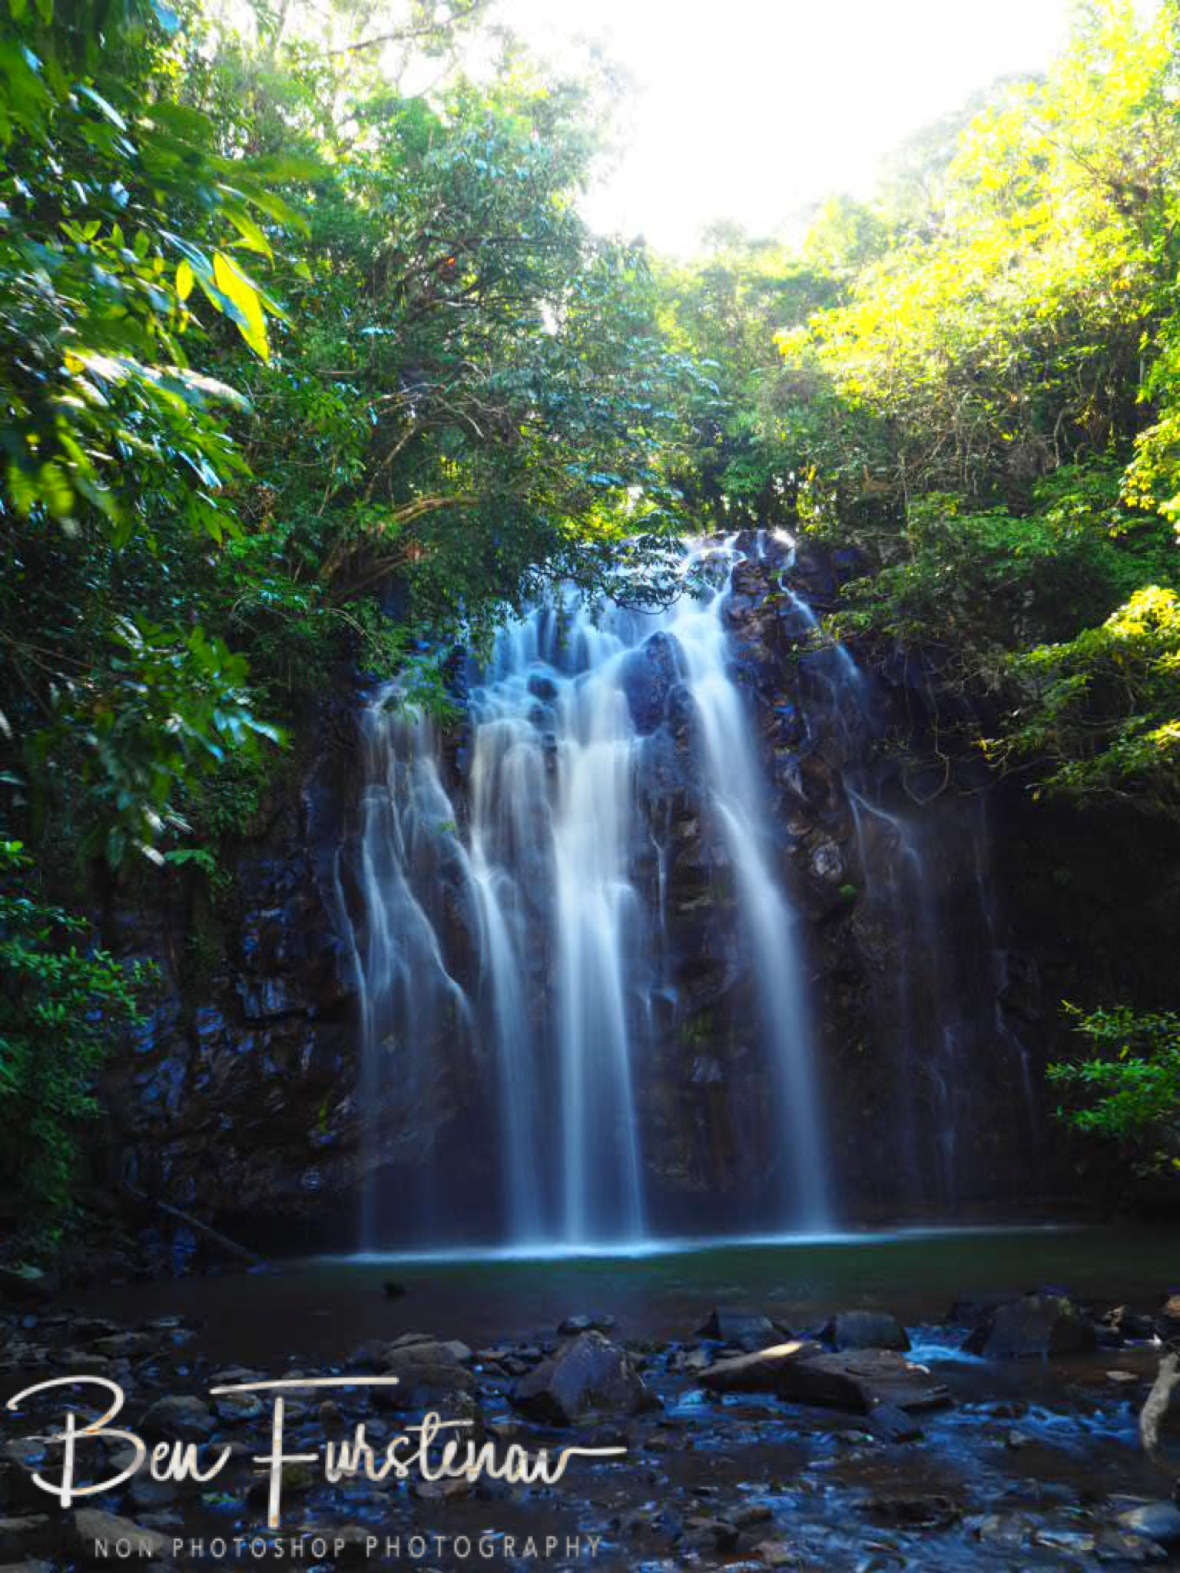 Ellinjia Falls and lush vegetation, Atherton Tablelands, Far North Queensland, Australia